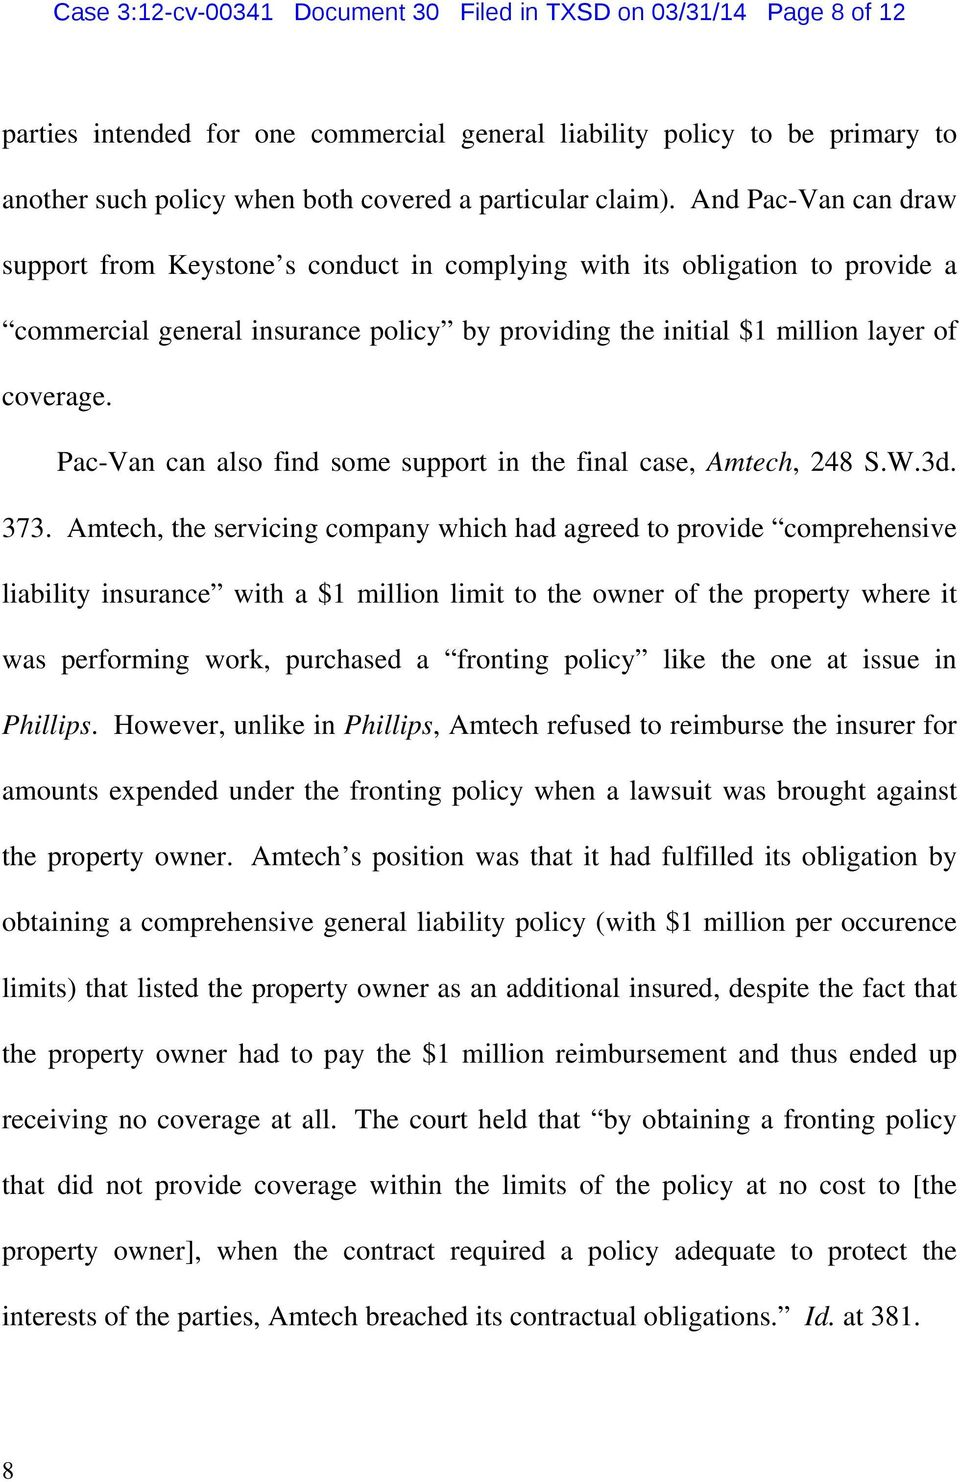 Pac-Van can also find some support in the final case, Amtech, 248 S.W.3d. 373.